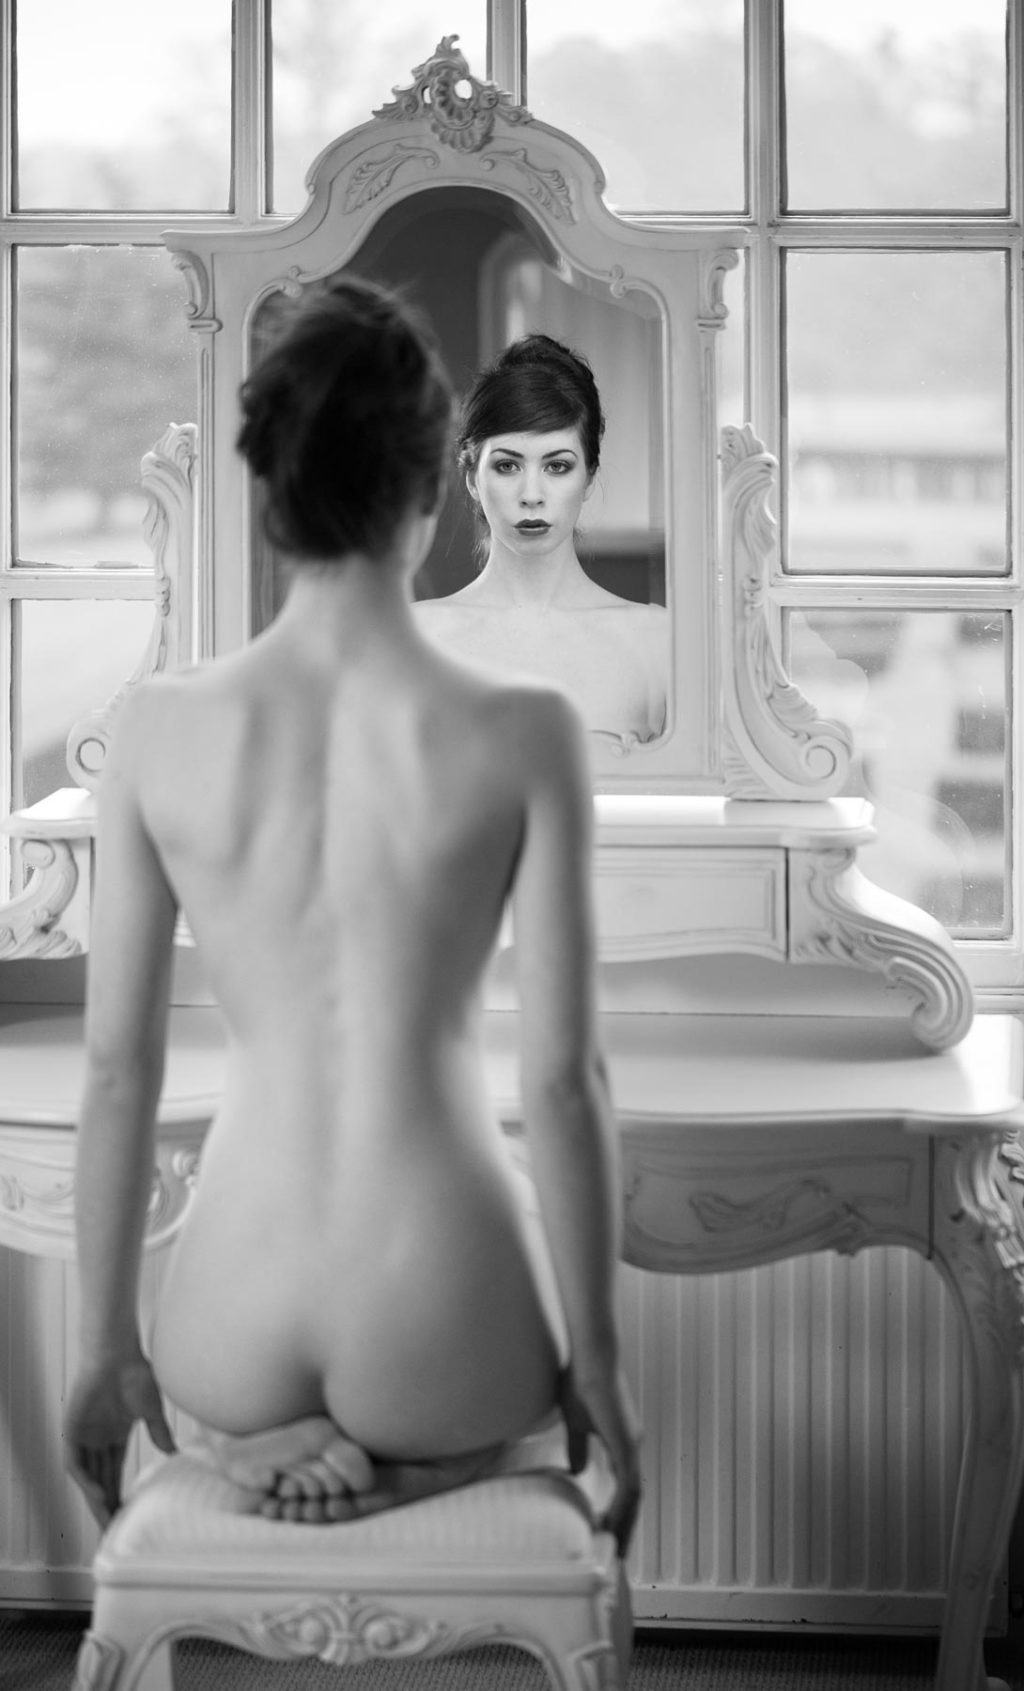 Elle Beth sitting naked in front of a mirror